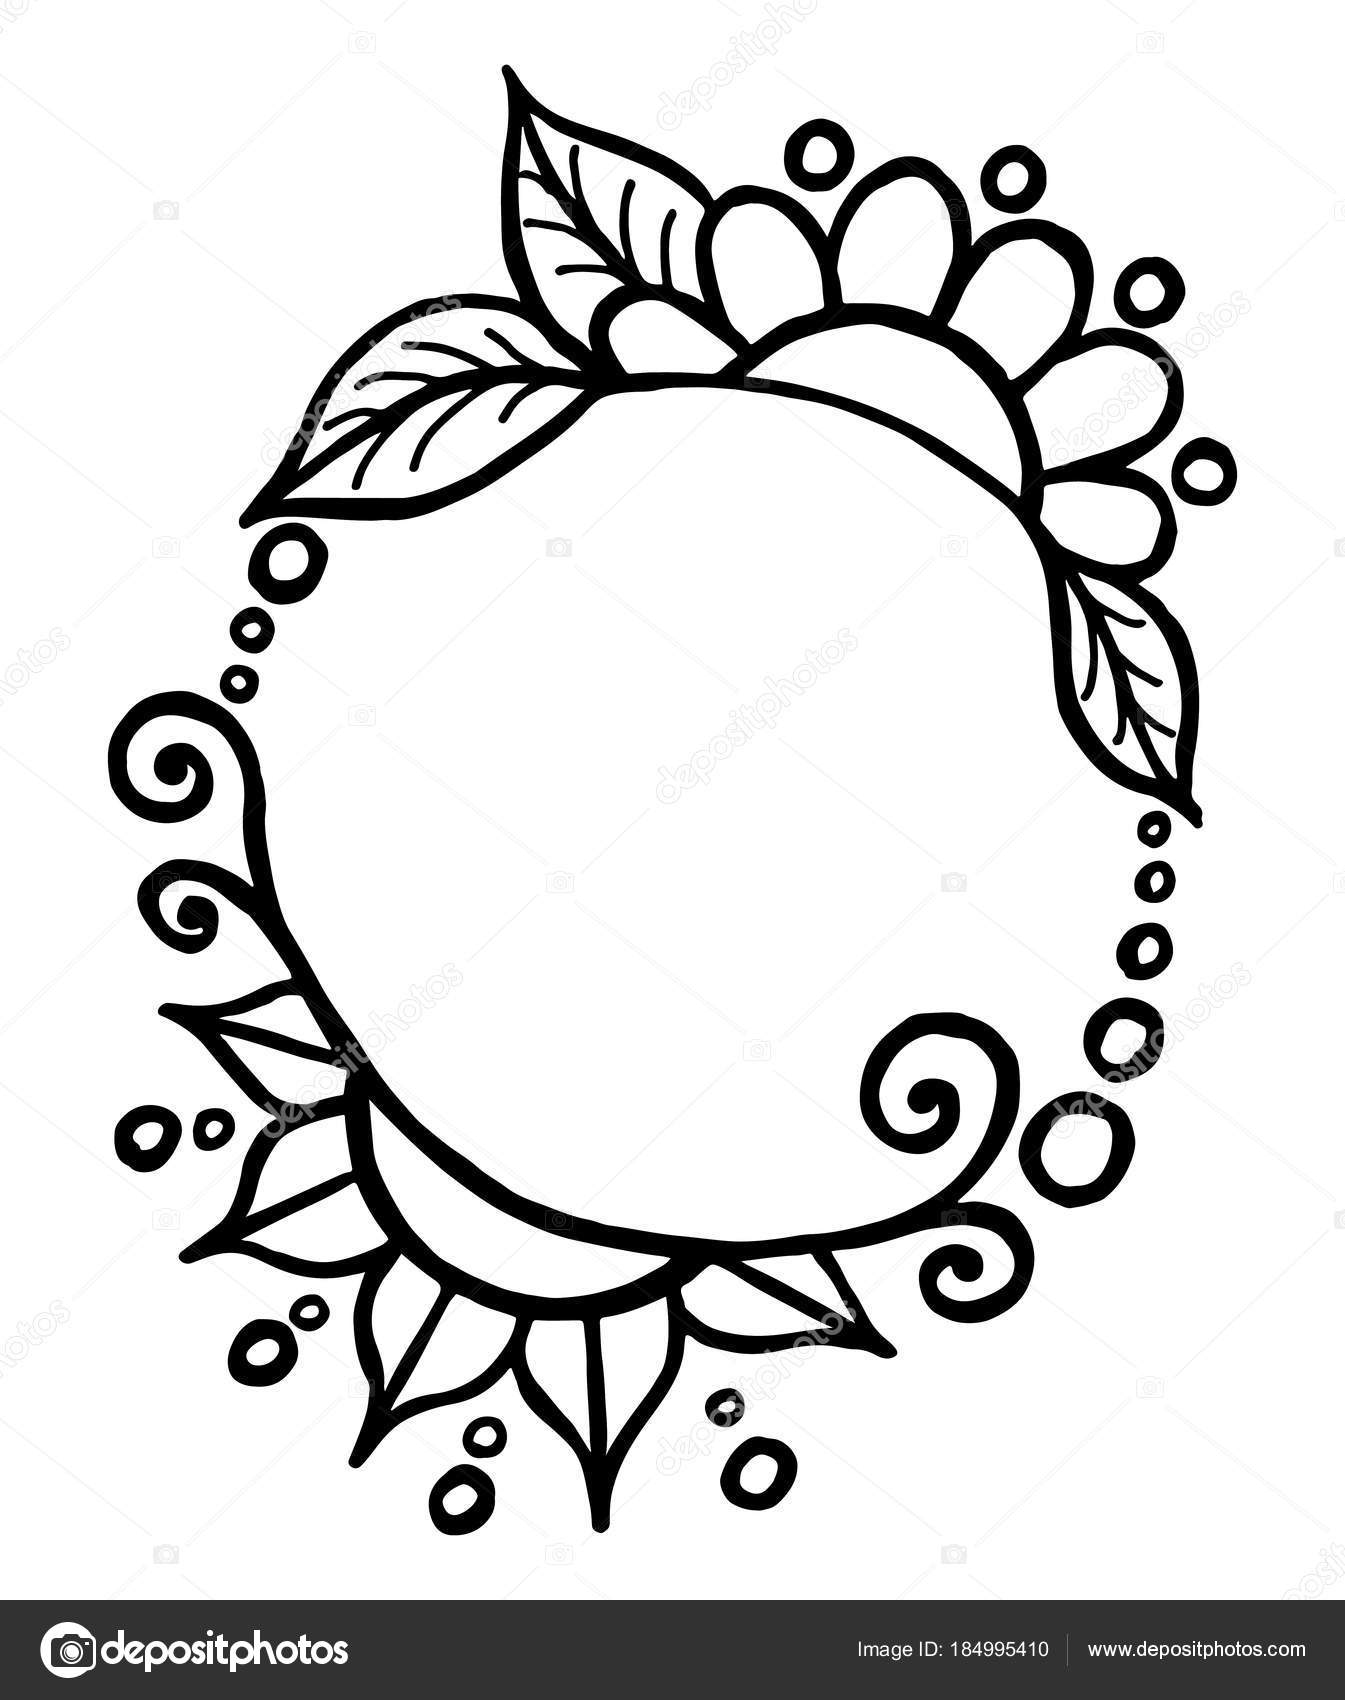 Round simple black black drawn vector frame with flowers and cur stock vector